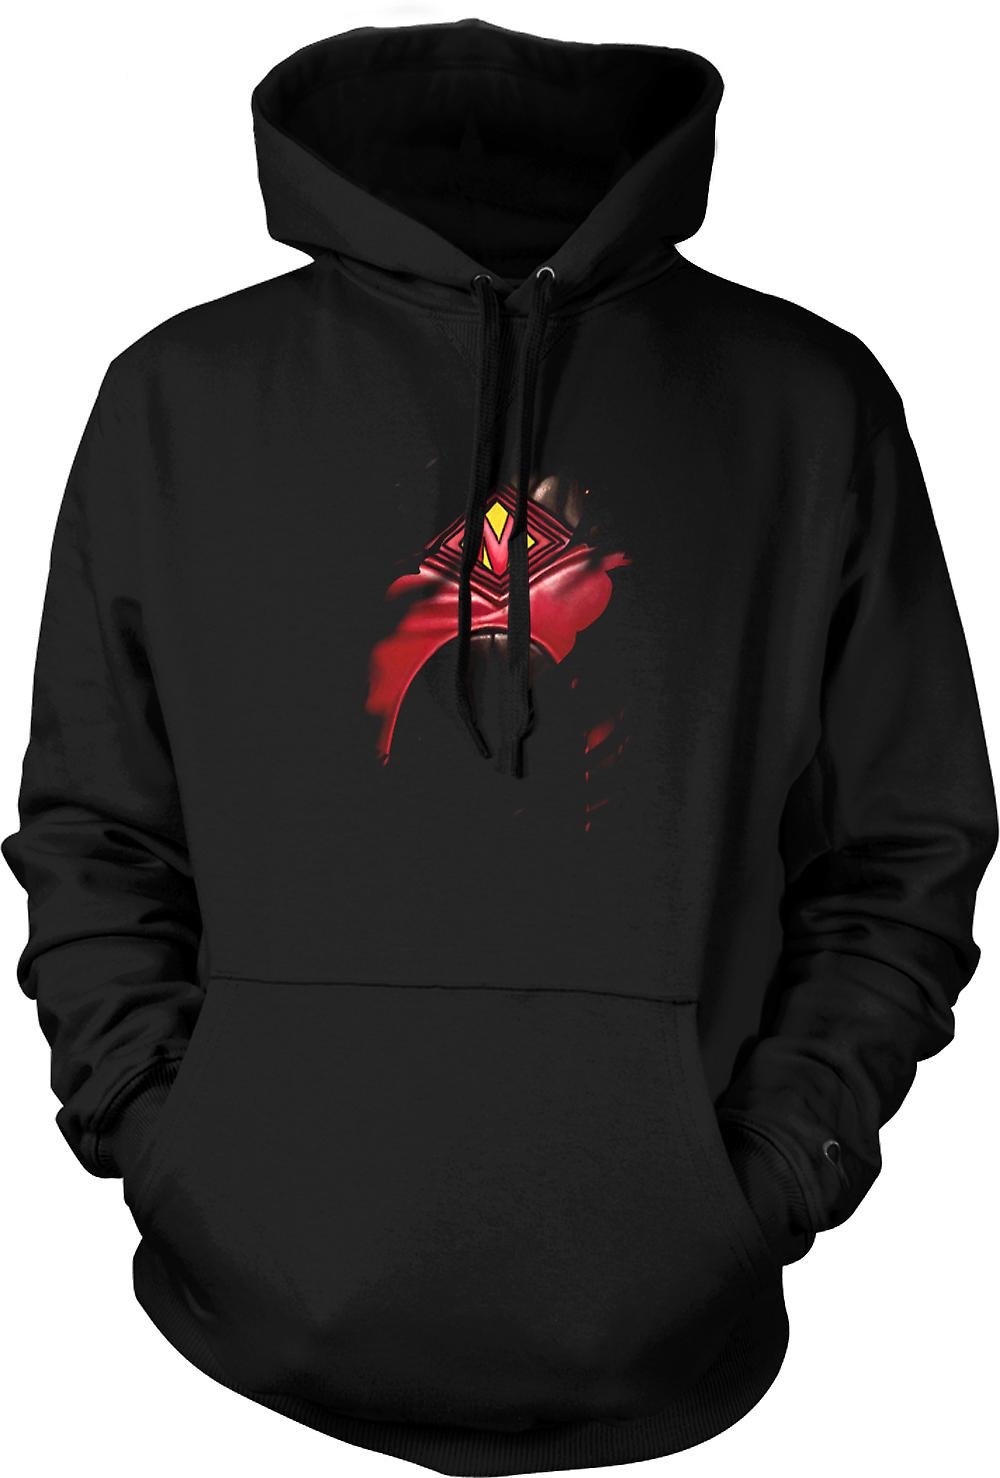 Mens Hoodie - Red Mist Ripped Design - Kickass Inspired Superhero